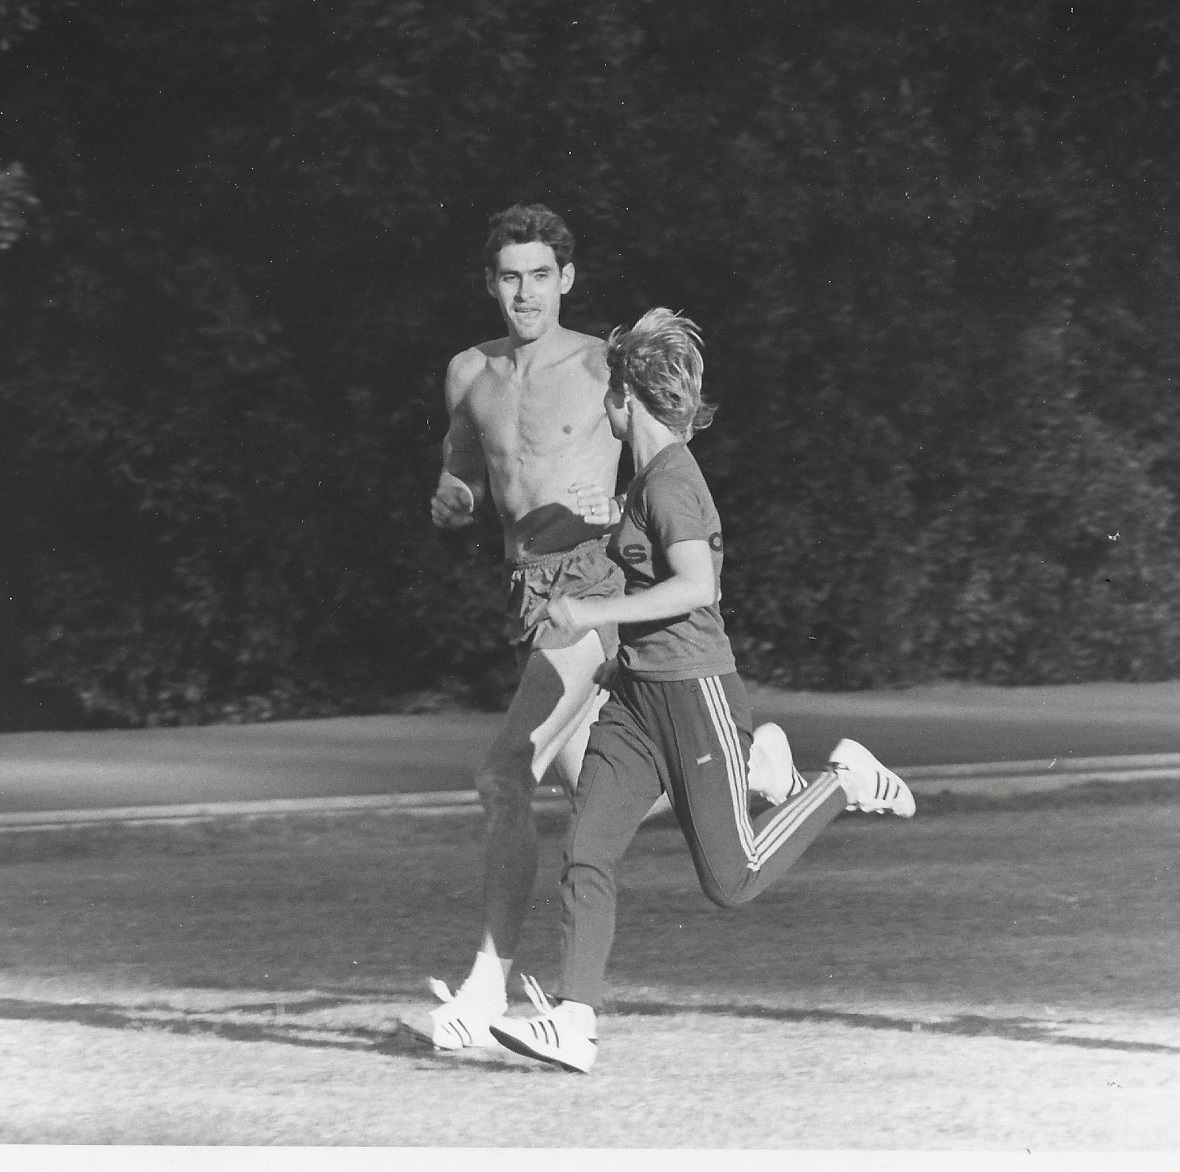 Over 50 years ago, Jim became the last American to set the World Mile Record with a time of 3:51.1 As a young boy, Jim tried many athletic sports and was cut from every team he tried out for. That is until he found the sport of cross country. He eventually earned a spot on the cross country team winning a letter from East High School, Wichita, KS. After less than two years of running, he became the first high school boy to run a mile in less than four minutes. As a junior in high school, he became the youngest distance runner to ever become a member of an Olympic team when he qualified for the 1964 United States Olympic Team at the distance of 1,500 meters. He would eventually represent the USA in two more Olympics competing on the world's largest stage. He won a Silver Medal in the 1968 Mexico City Olympic Games. ESPN would name him High School Athlete of the Century in front of golfer,Tiger Woods, and basketball great, Lebron James. He would be named 1967 Sports Illustrated Sportsman of the Year, set World Records in the Mile, 880 yds, 800 meter and 1,500 meters and appear on the cover of Sports Illustrated magazine seven times. A meaningful milestone Jim and Anne share is their marriage of 50 years celebrated on January 25, 2019. They attribute the longevity of their marriage to God's grace and love, His sense of humor and lots of forgiving moments. Bring your questions and expectations this summer to the Jim Ryun Running Camp and give the staff the opportunity to help develop and realize your dreams.